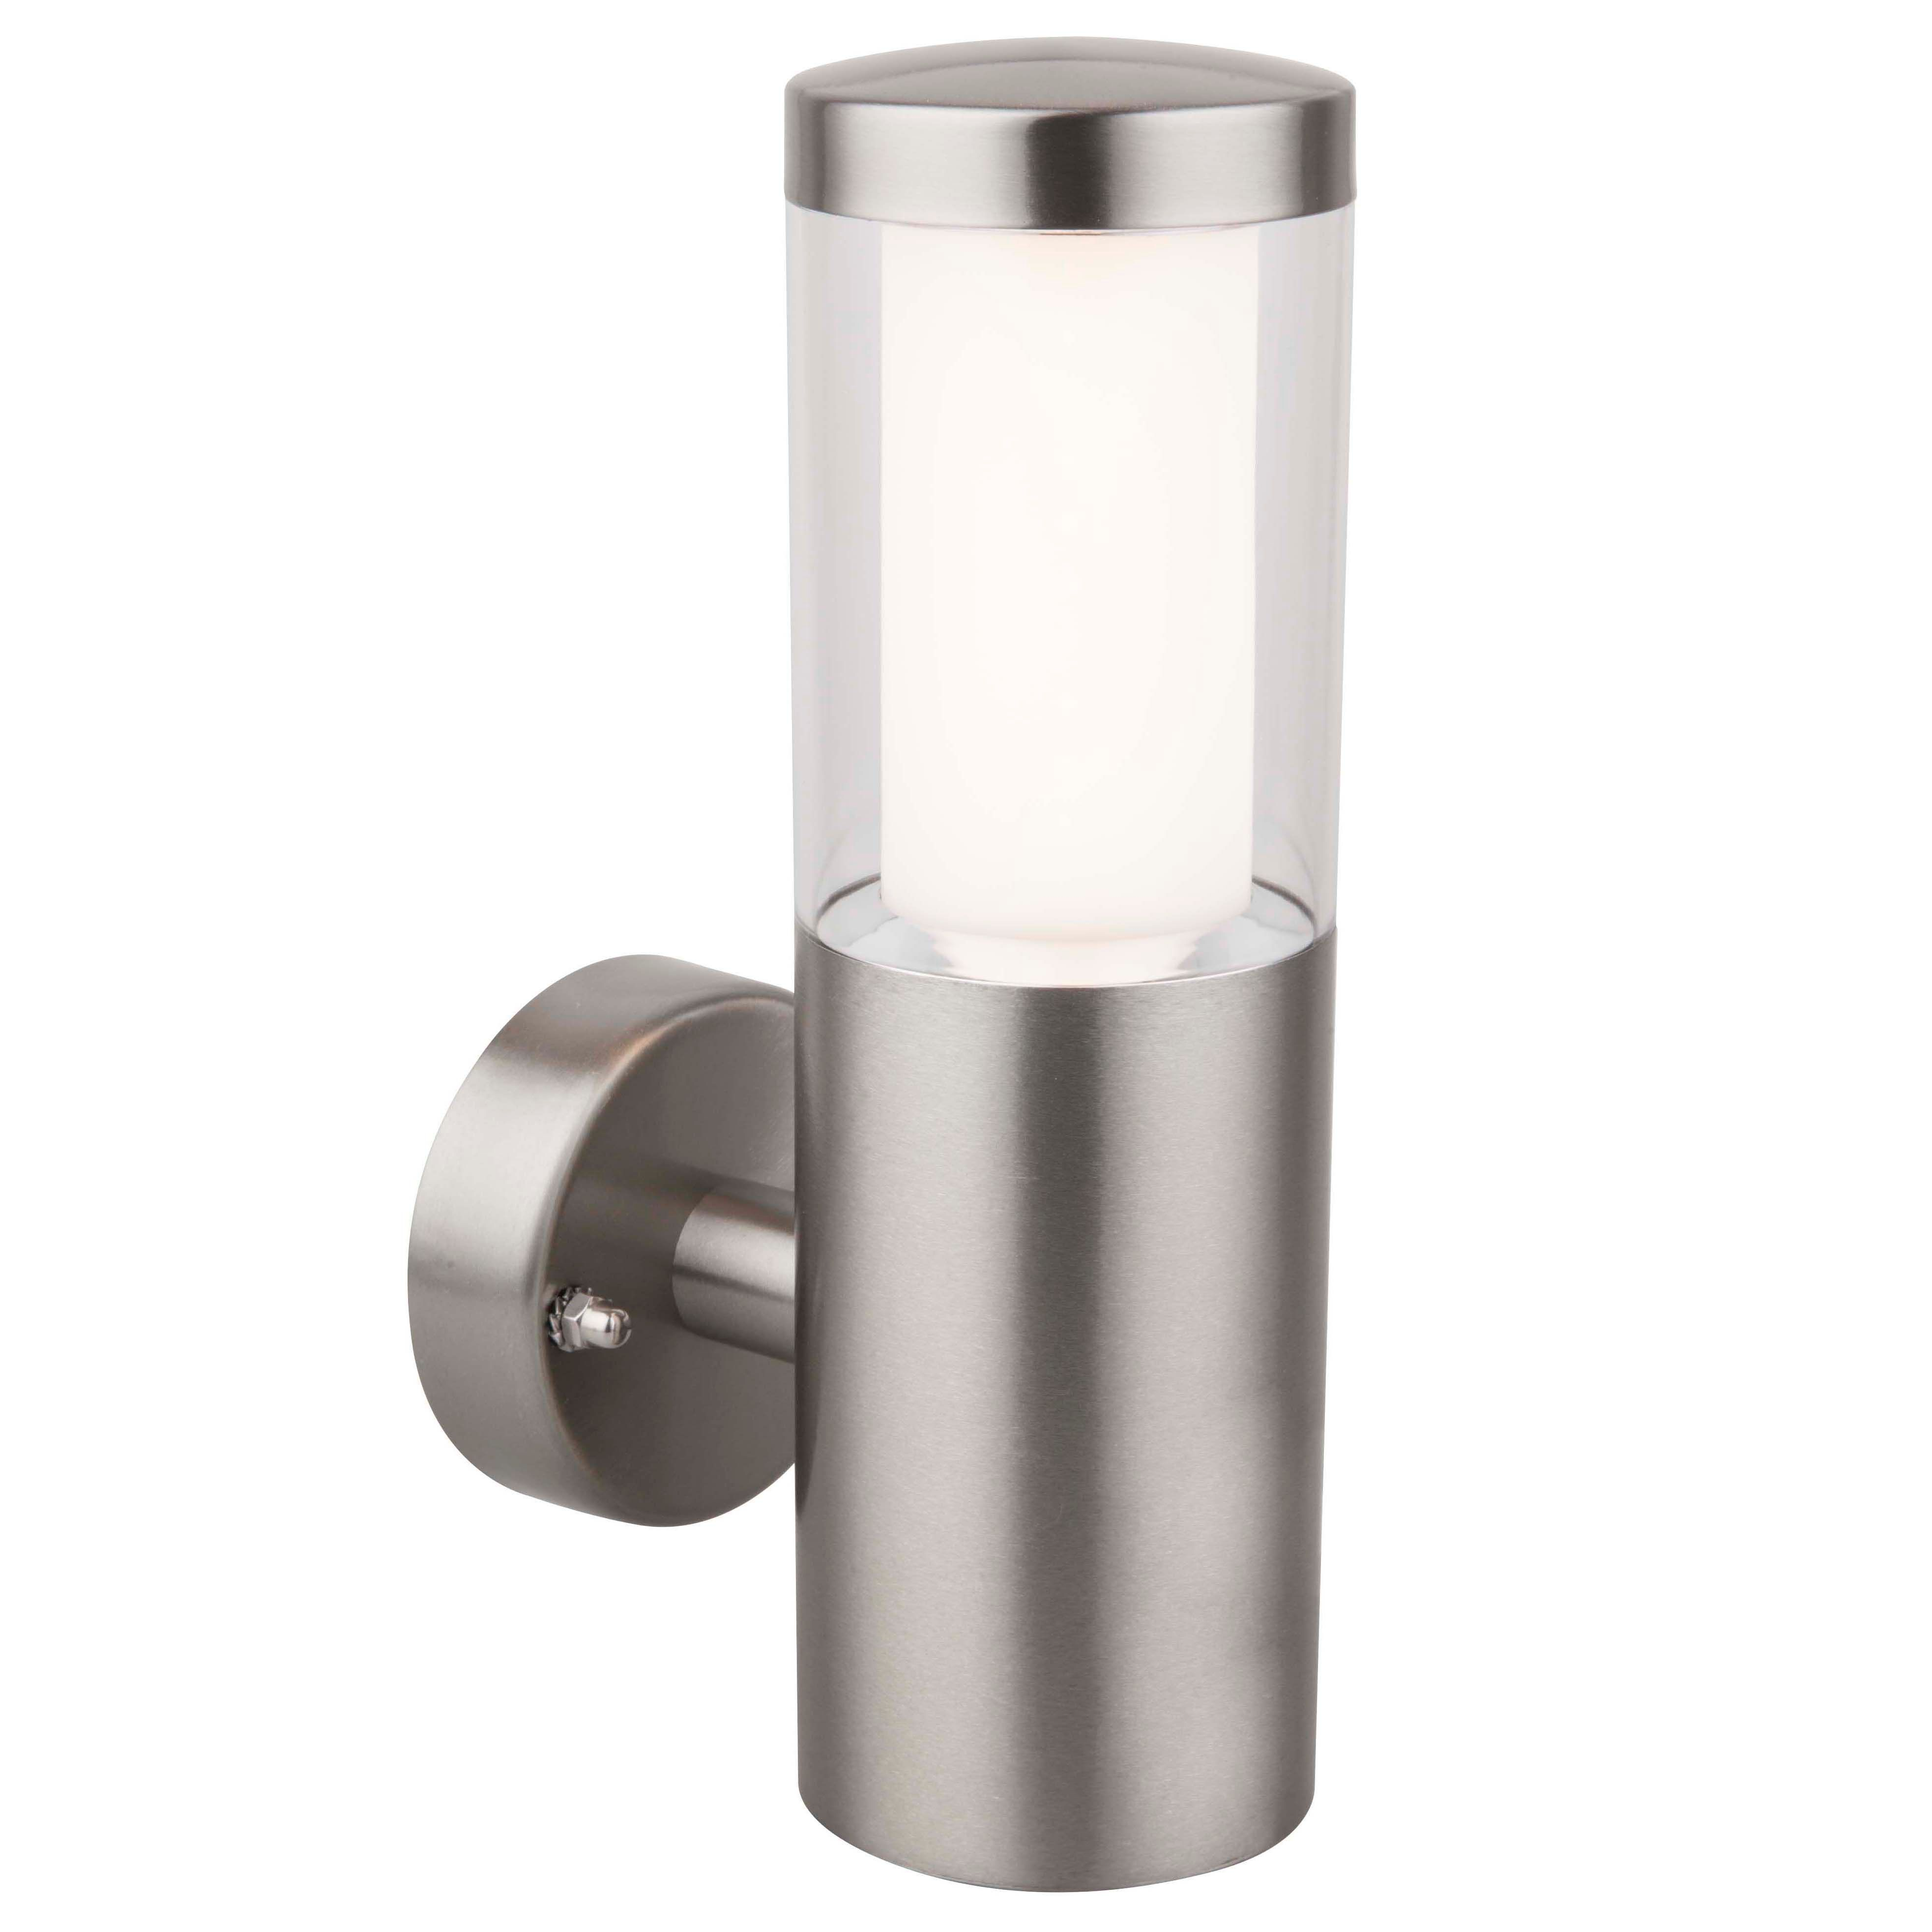 Blooma Nomos Stainless Steel Mains Powered External Wall Light